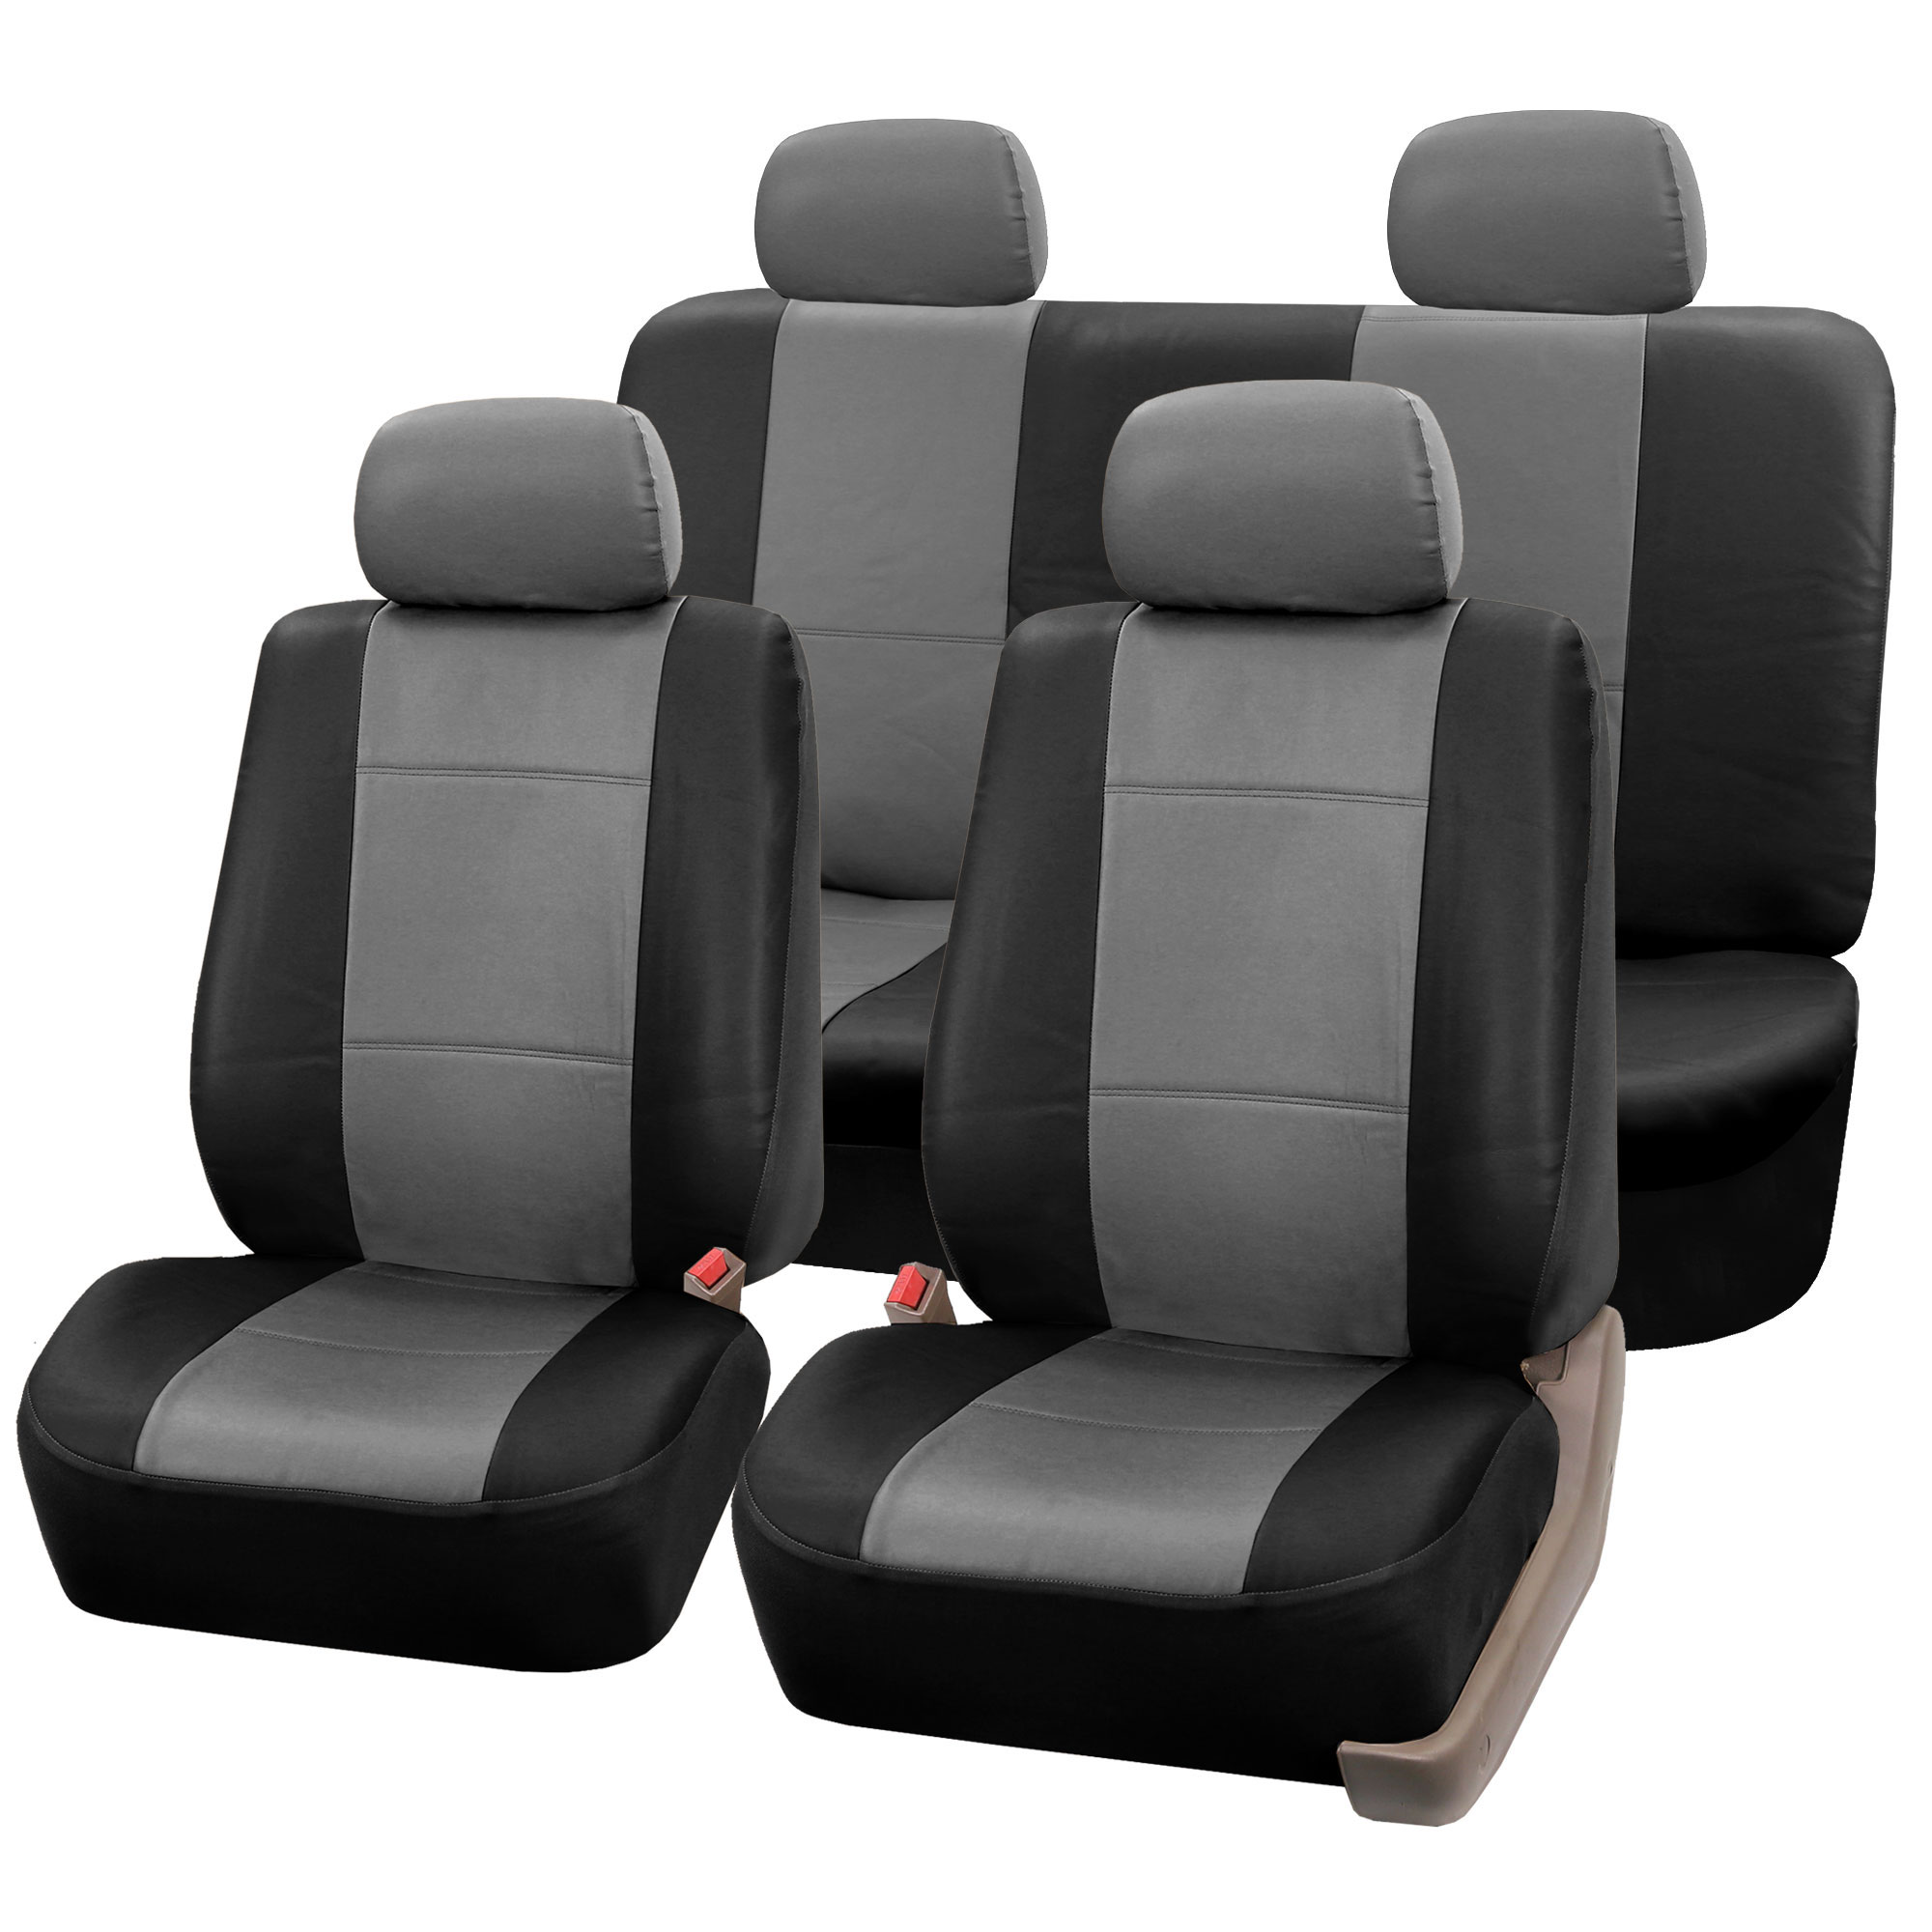 Suv Car Seat Cover Sets